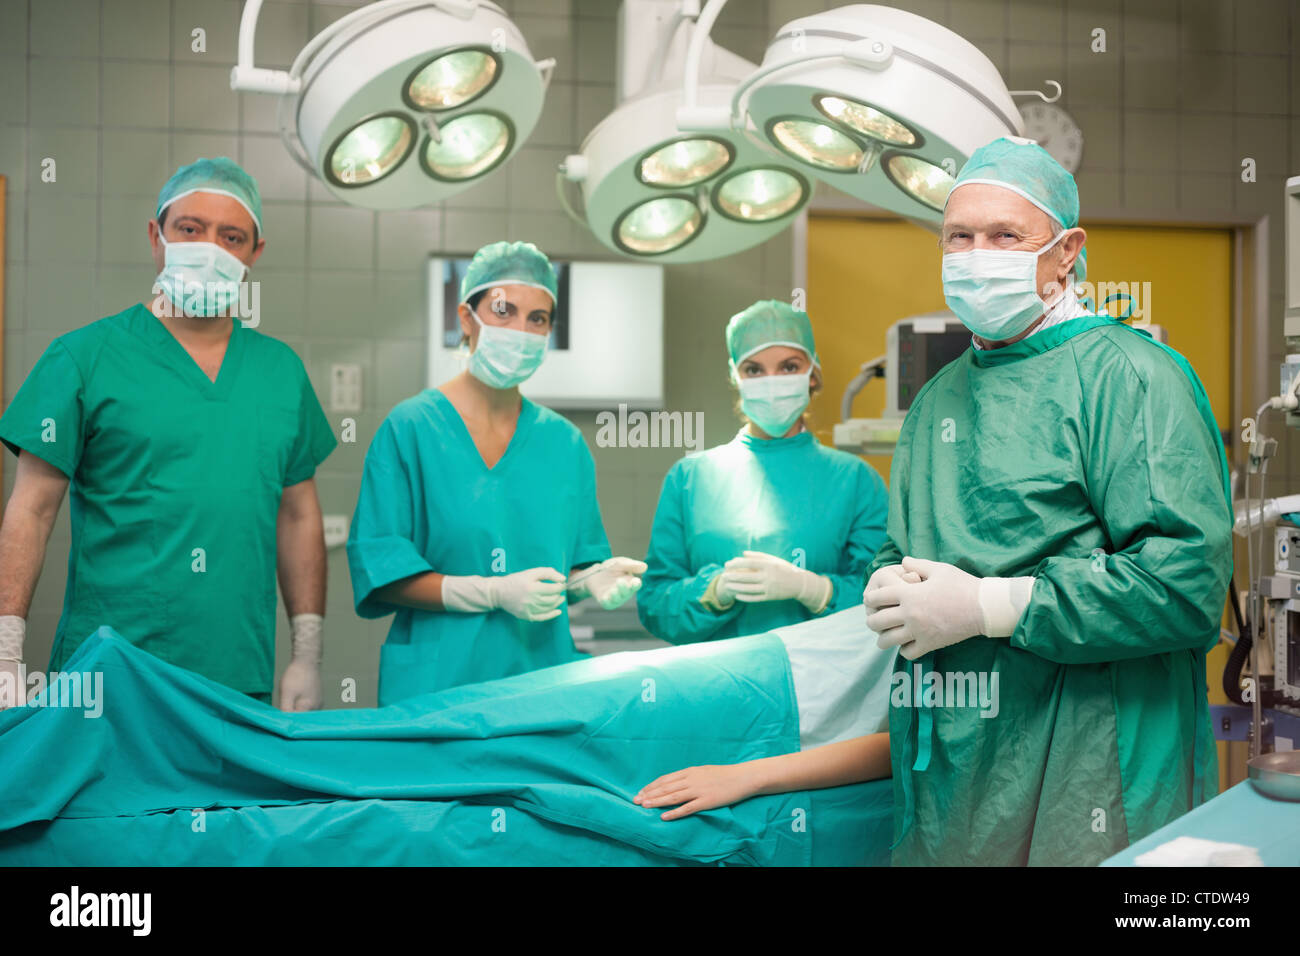 Medical team surrounding a patient - Stock Image